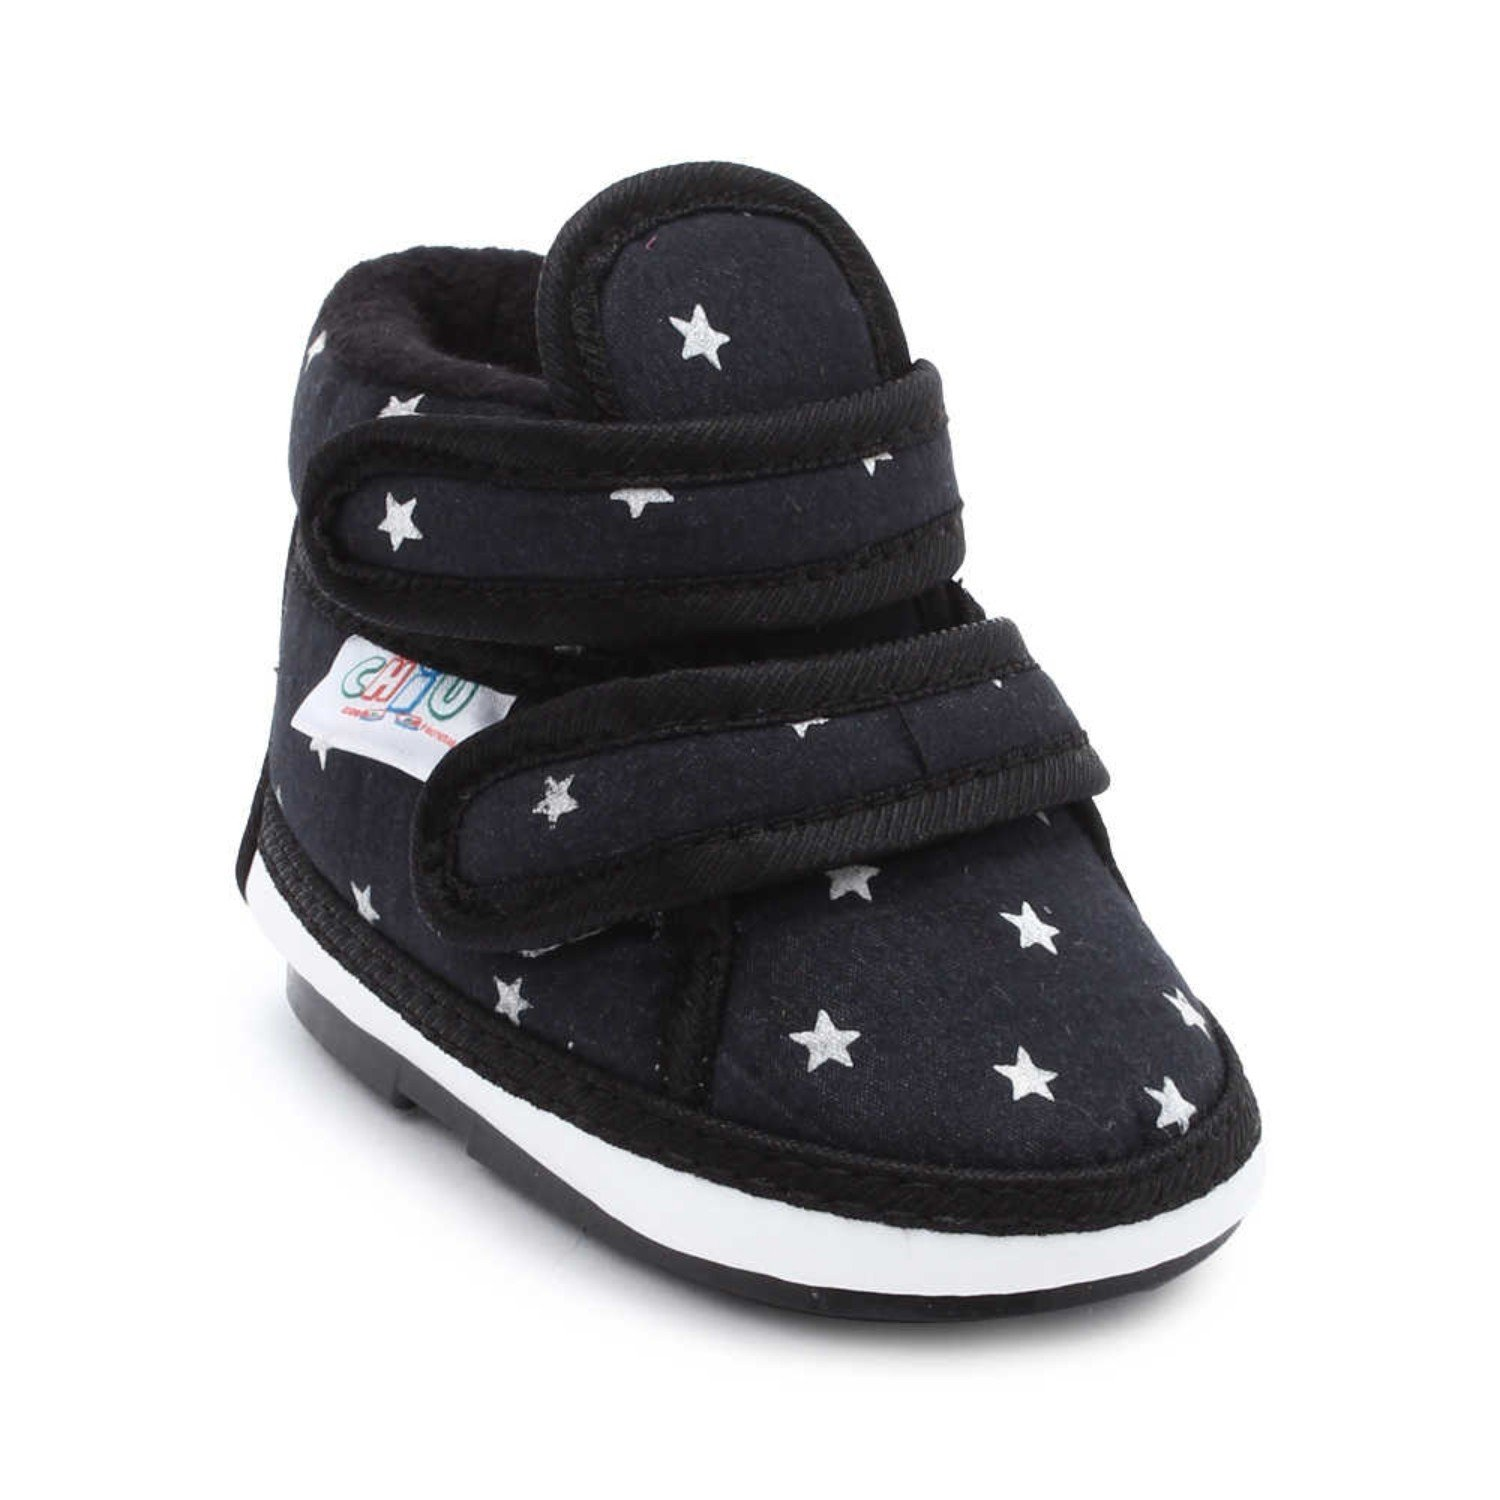 CHIU Chu-Chu Black Shoes with Double Strap for 15-18 Months Baby Boys & Baby Girls (B078M1W2TG) Amazon Price History, Amazon Price Tracker